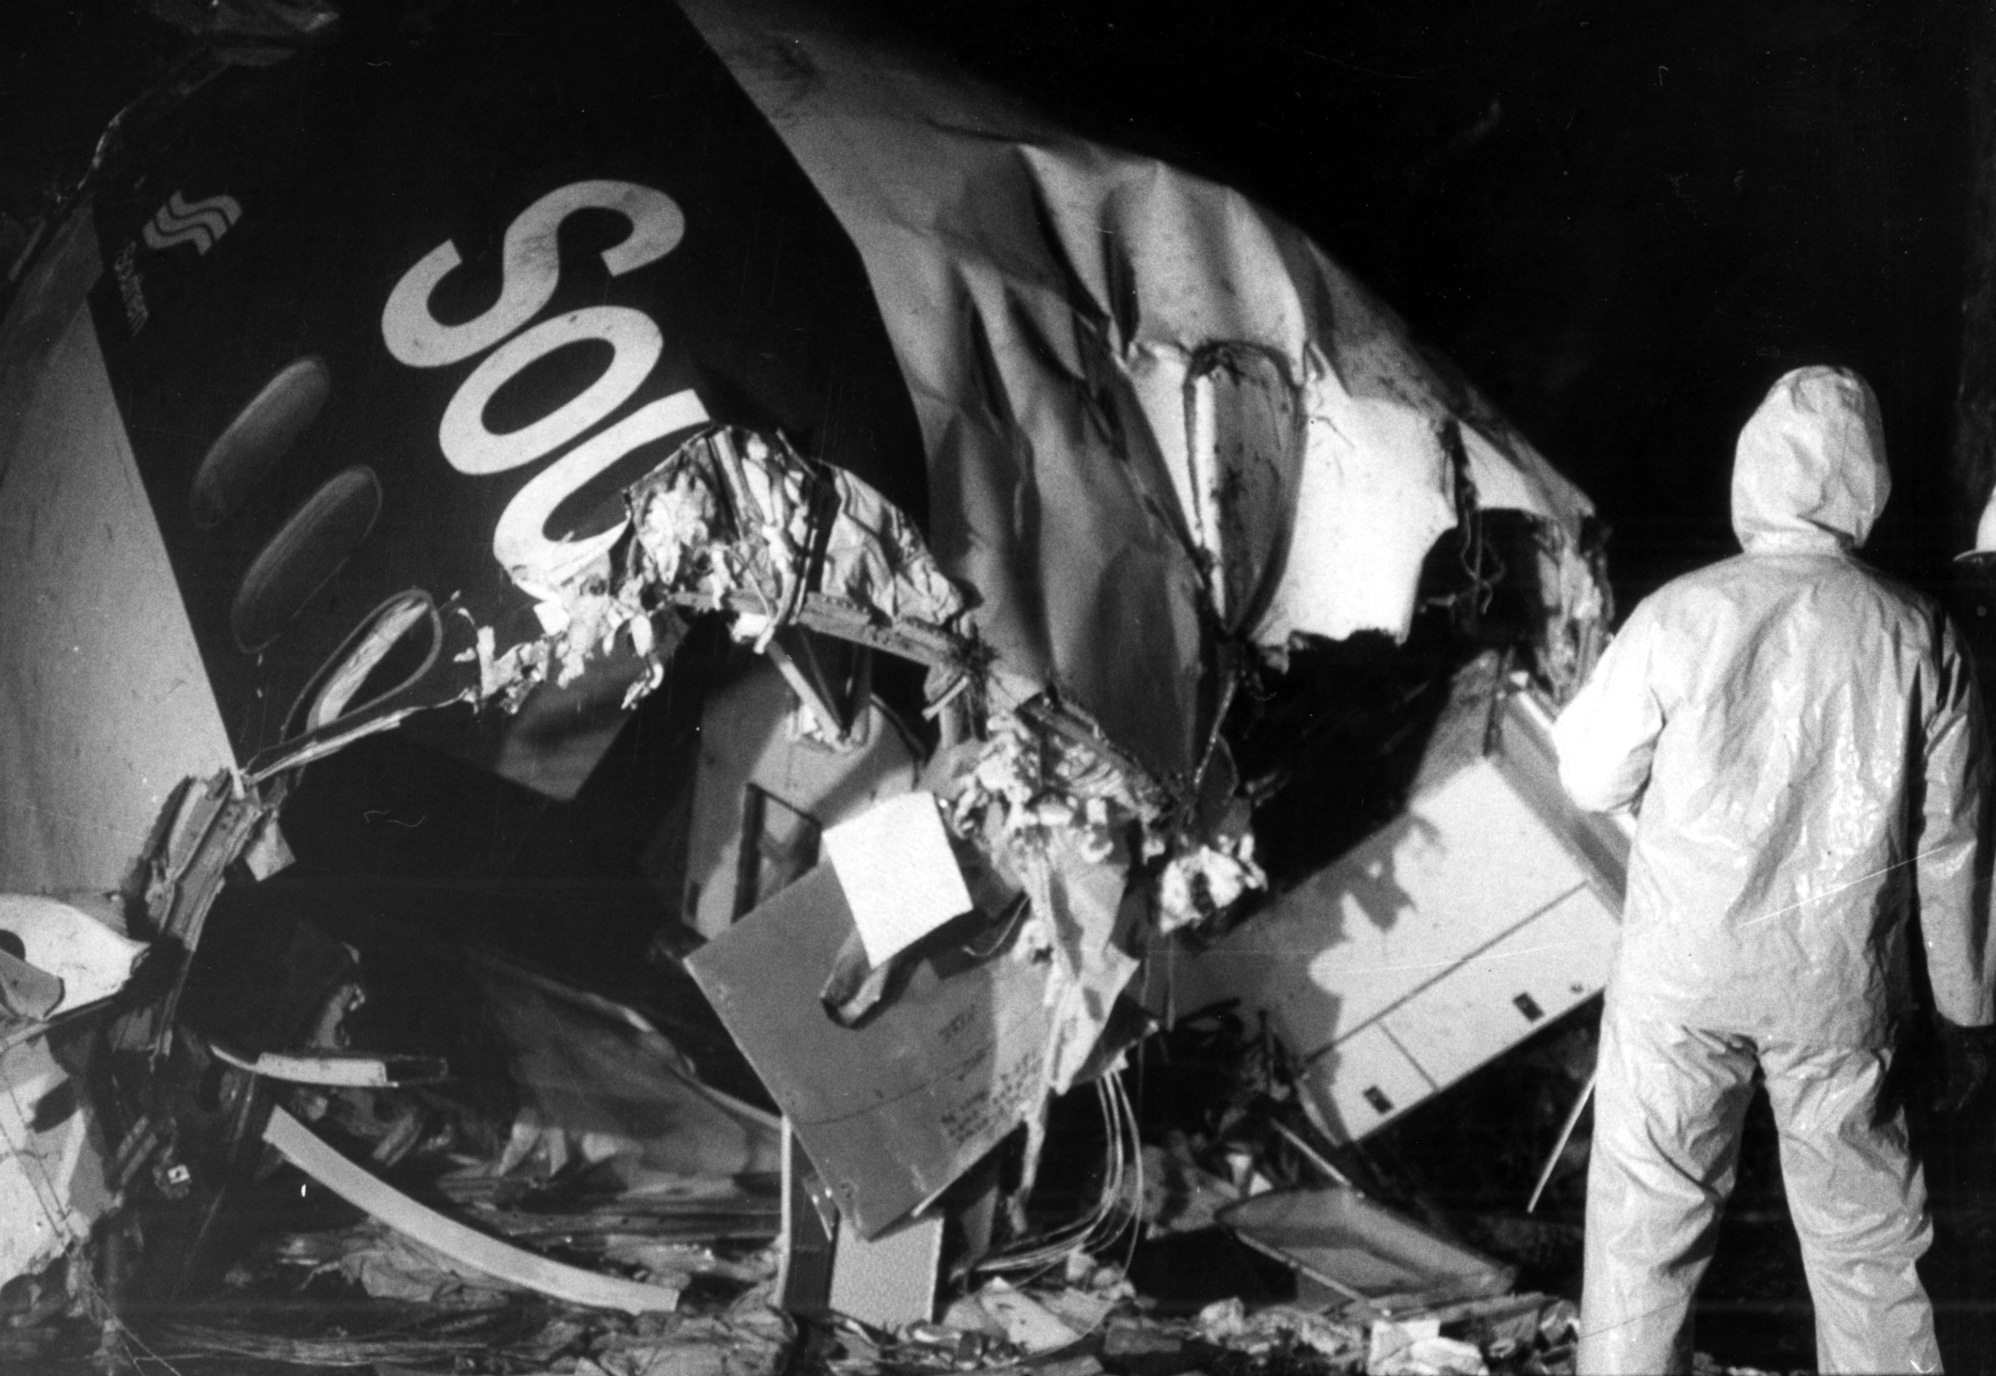 A worker searches through the wreckage